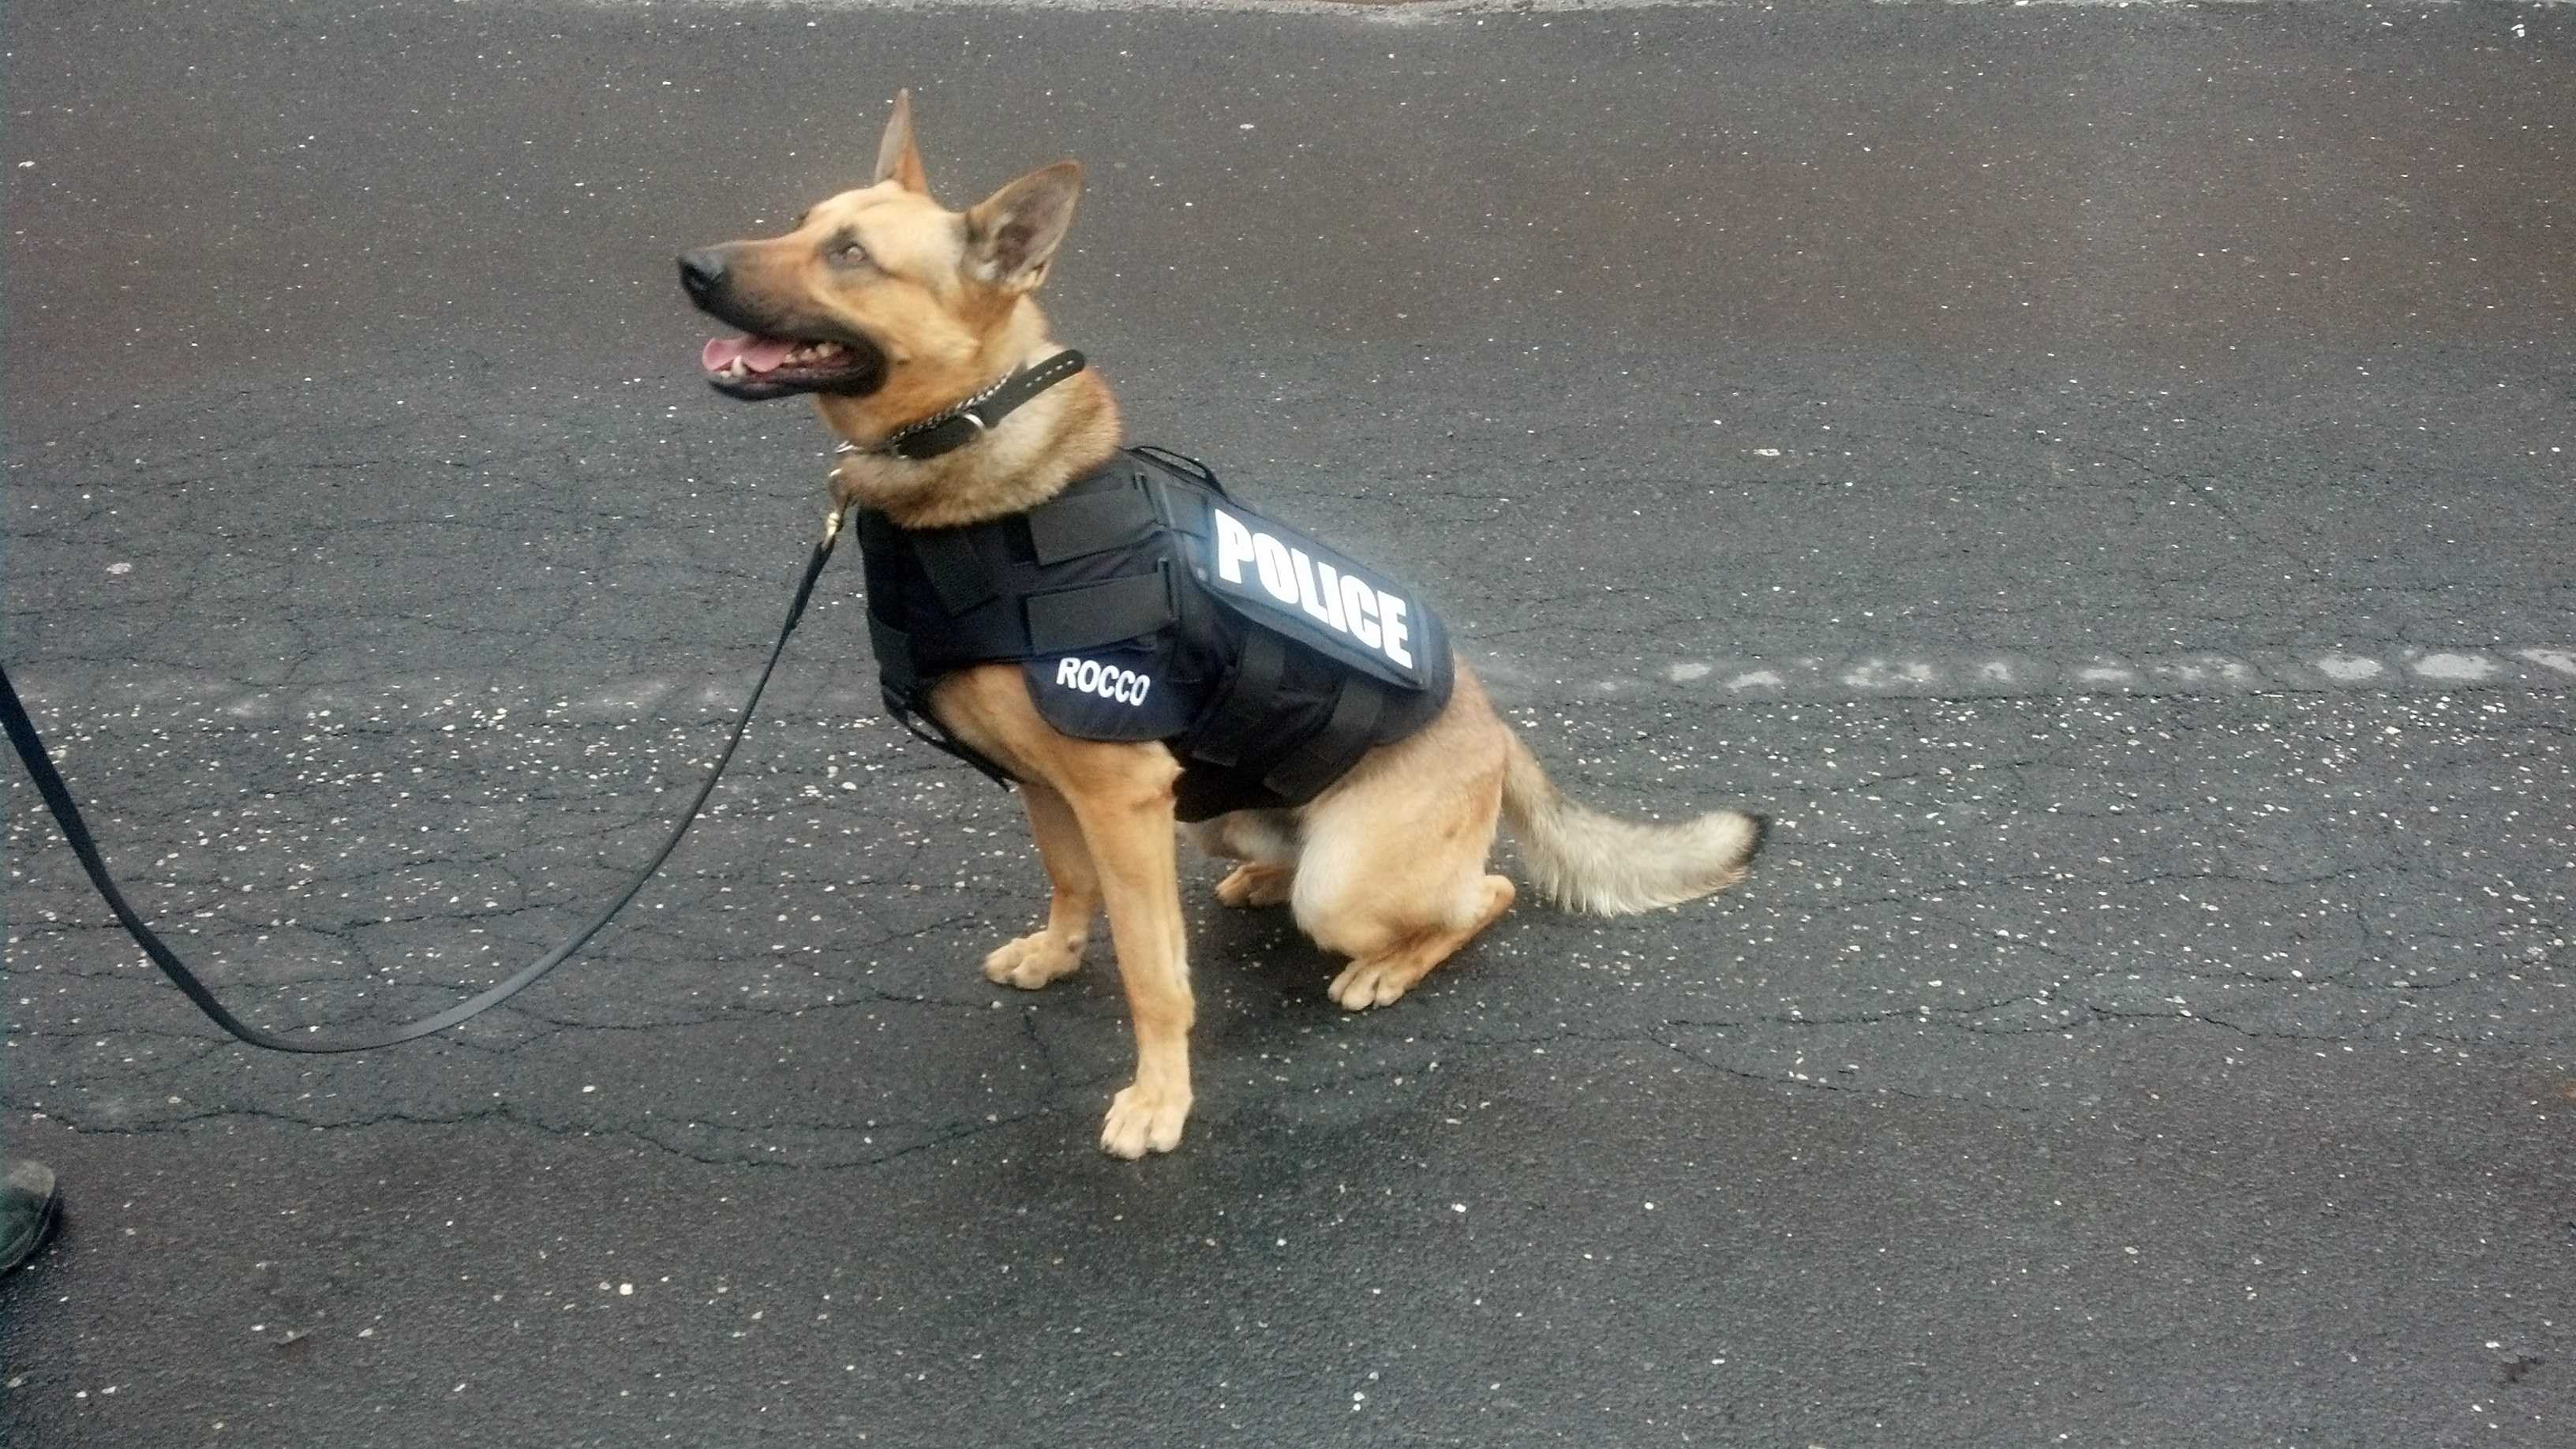 Many police dogs wear ballistic vests like this K-9 from Lower Allen Township.